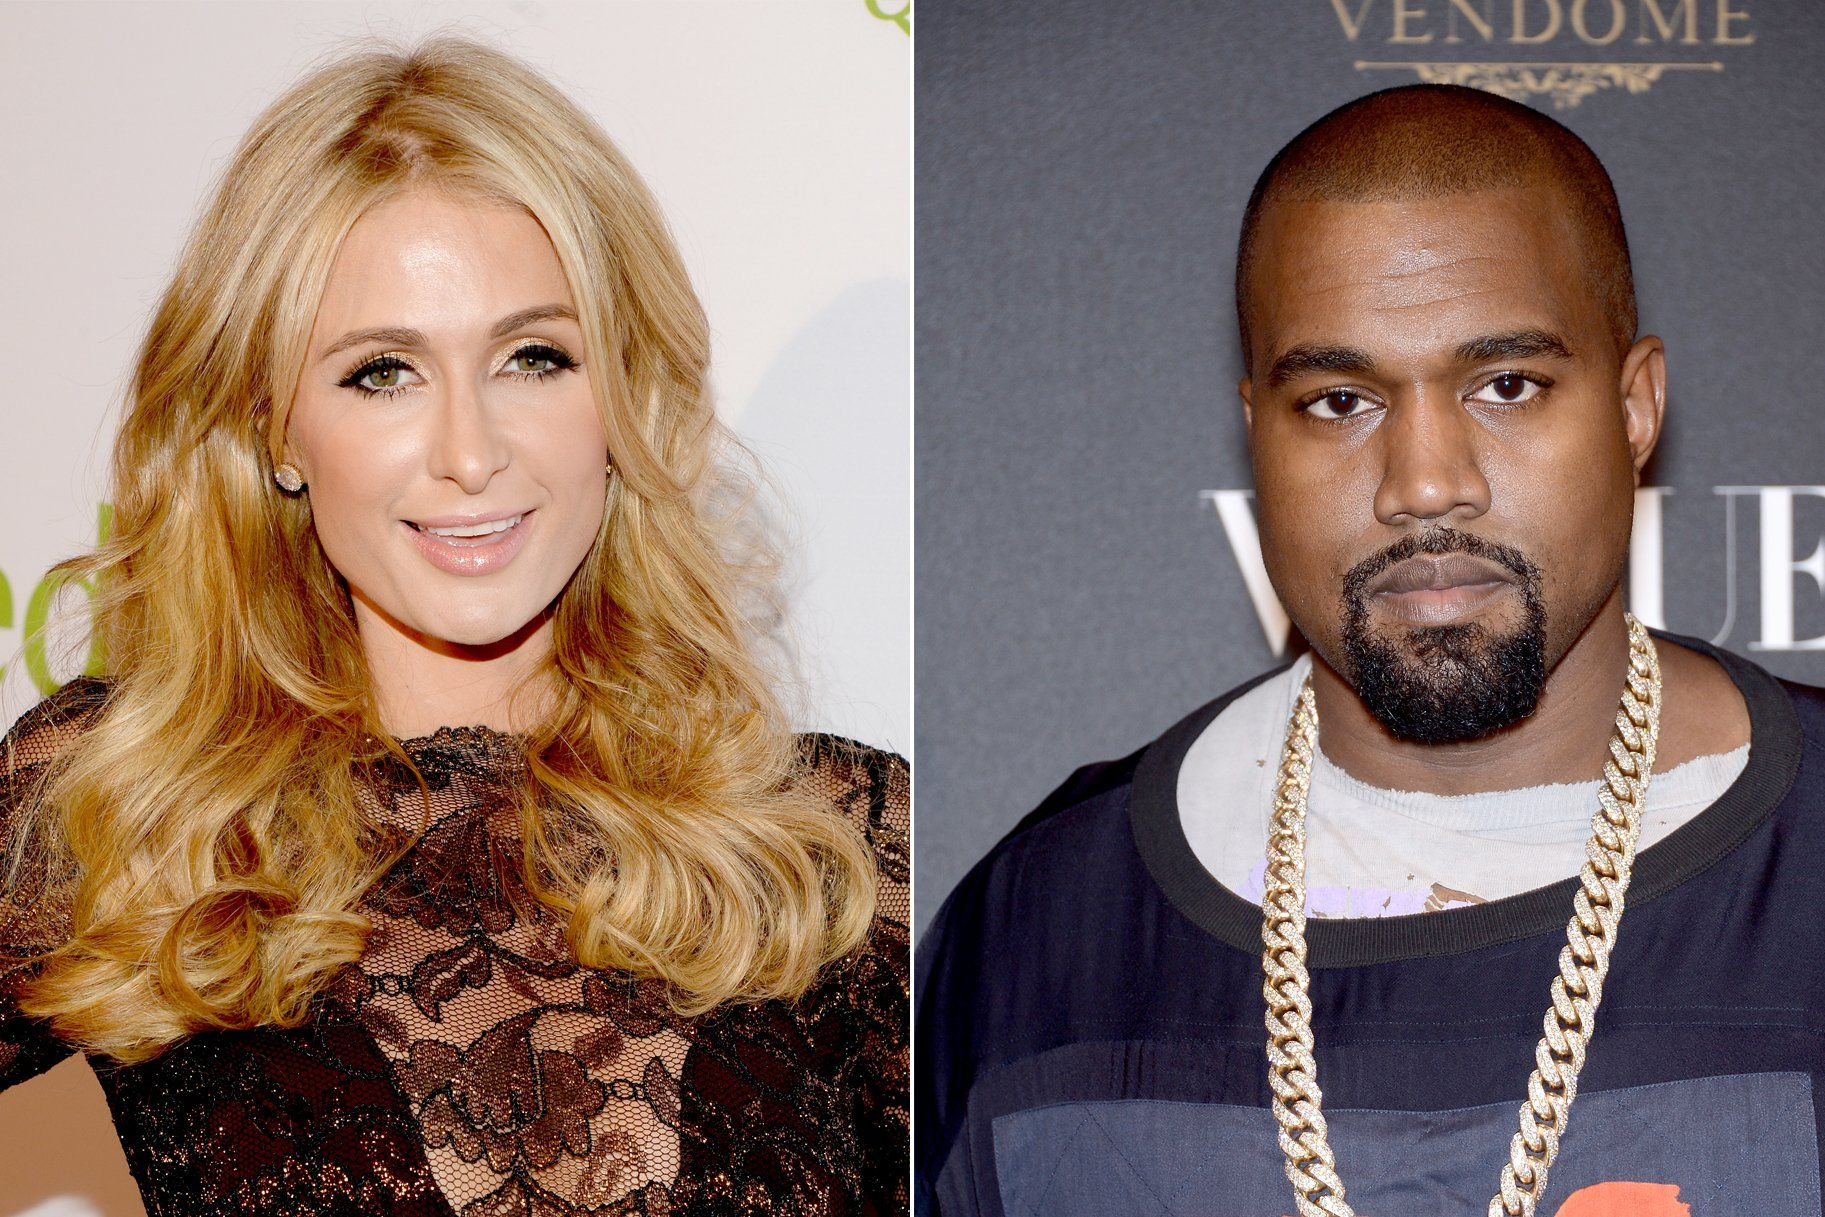 Paris Hilton Goes All Out With Parody Presidential Campaign To Mock Kanye West Check Out Her Hilarious Slogan And Pledge In 2020 Kanye West Kendall And Kylie Jenner Kanye West Adidas